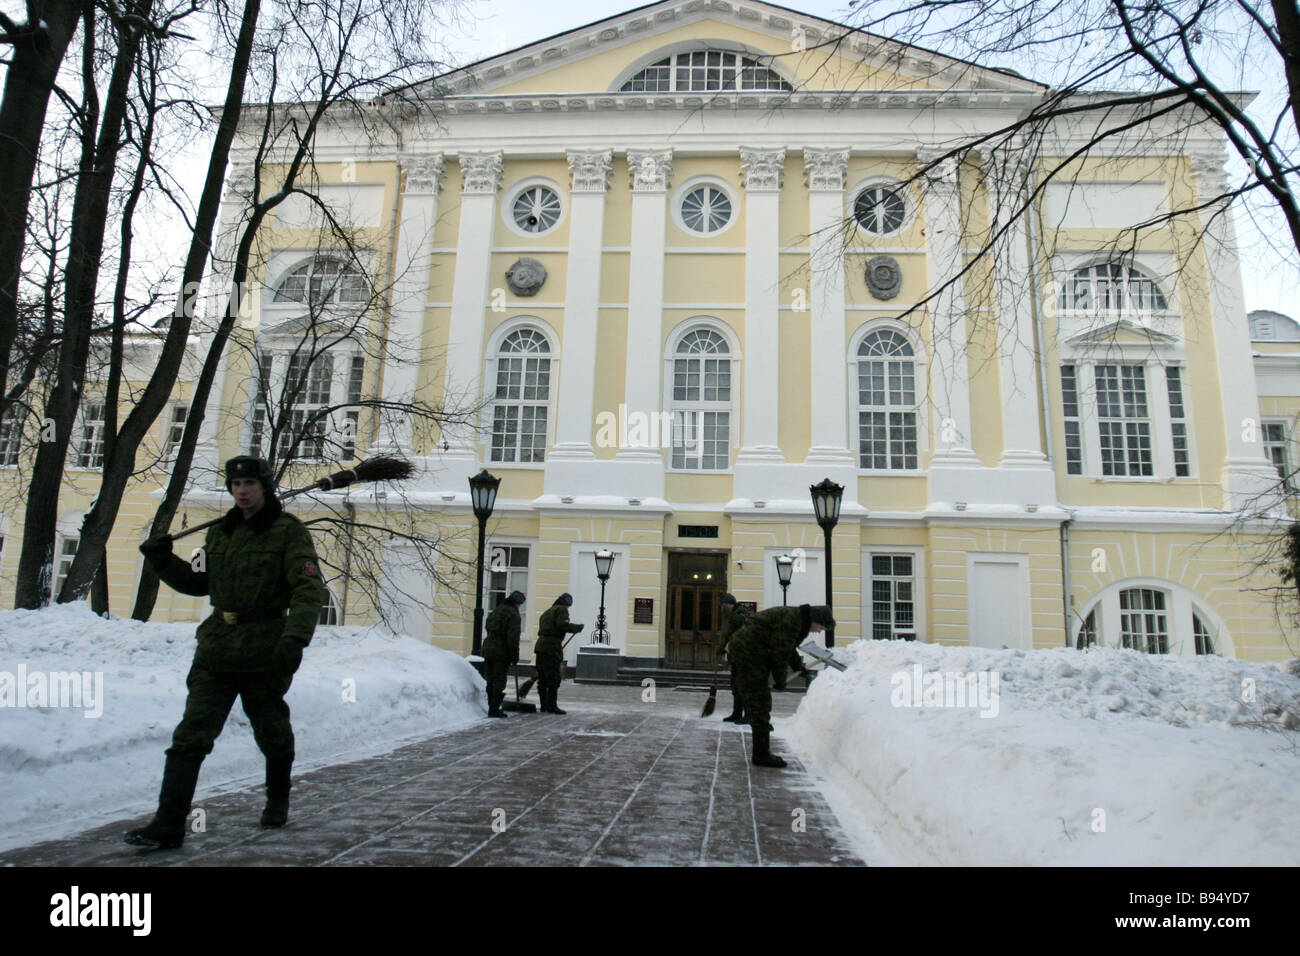 cleaning snowy garden paths burdenko central military hospital